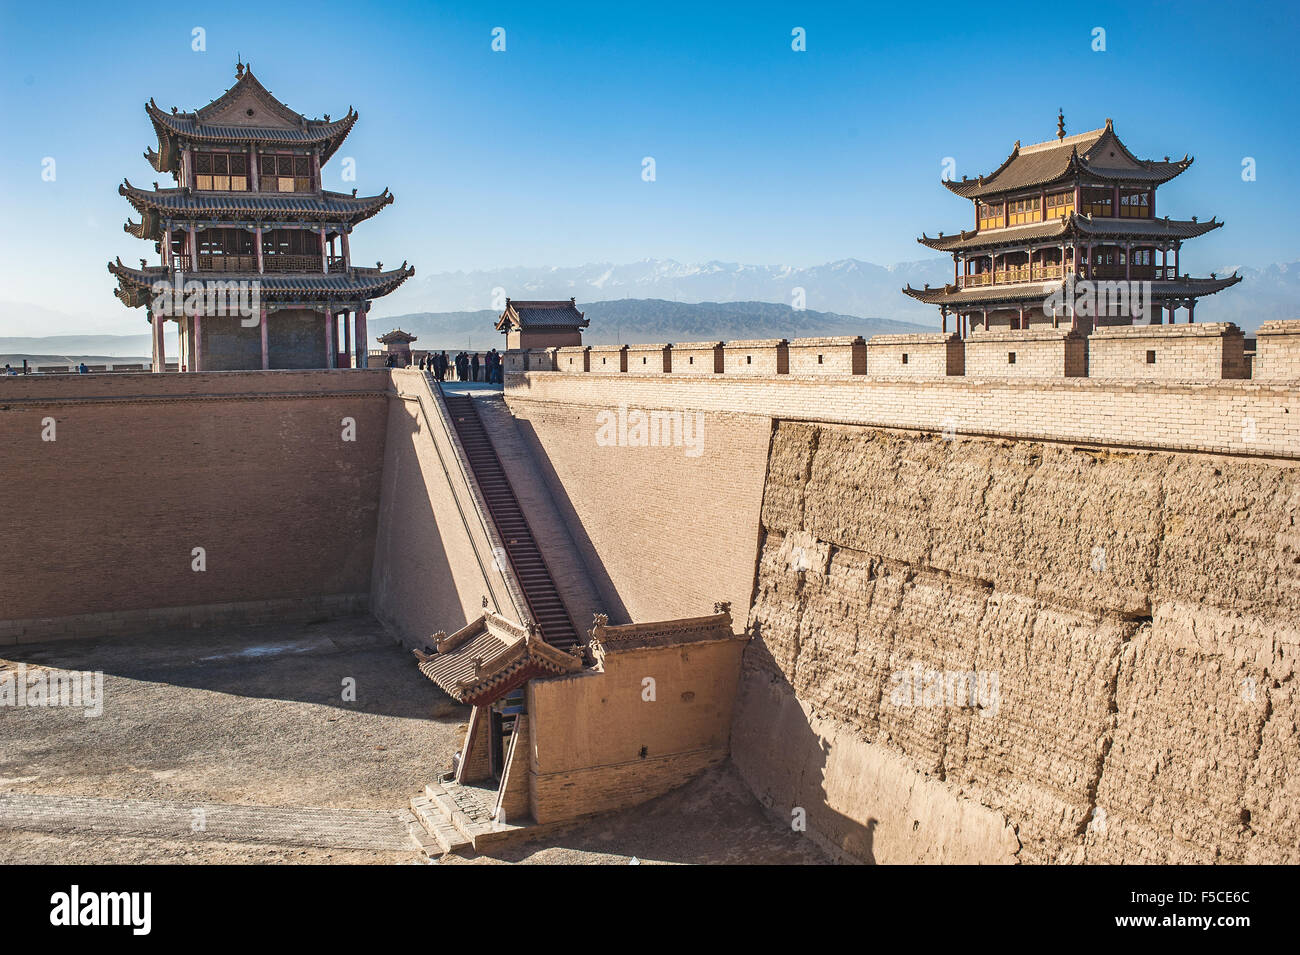 Jiayuguan Castle,Gansu of China - Stock Image